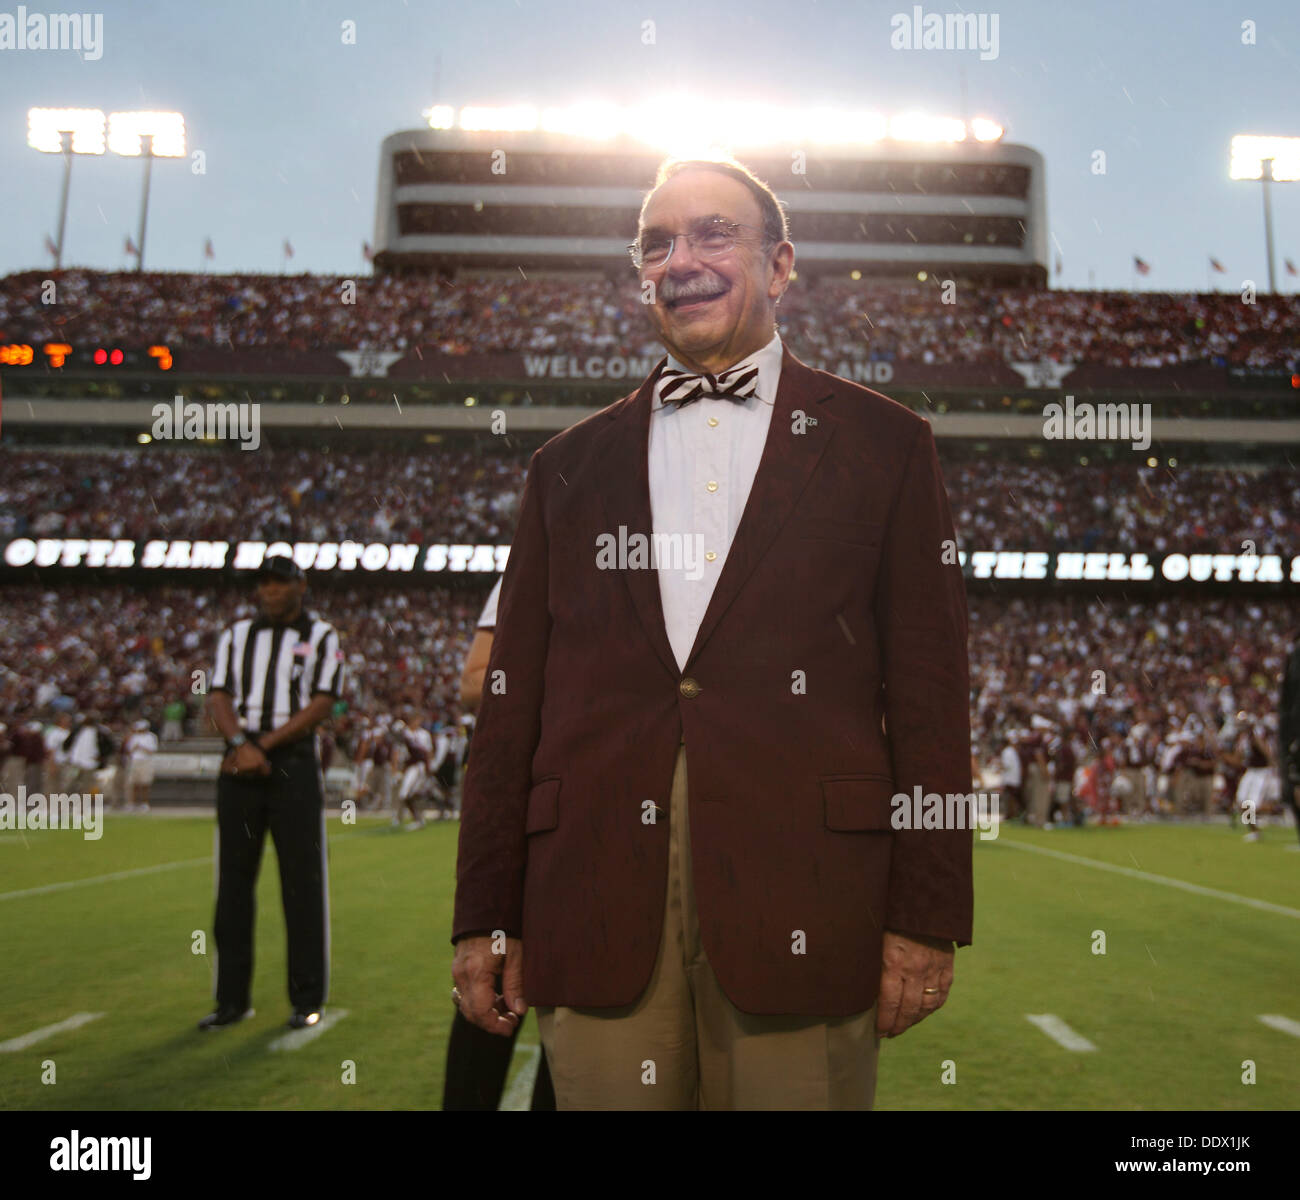 College Station, Texas, USA. 7th Sep, 2013. 9/7/13 - Texas A&M president Dr. R. Bowen Loftin during the coin flip in the game against Sam Houston State at Kyle Field in College Station, Texas Saturday September 7, 2013. A&M won 65-28.Photo by Erich Schlegel Credit:  Erich Schlegel/ZUMAPRESS.com/Alamy Live News - Stock Image